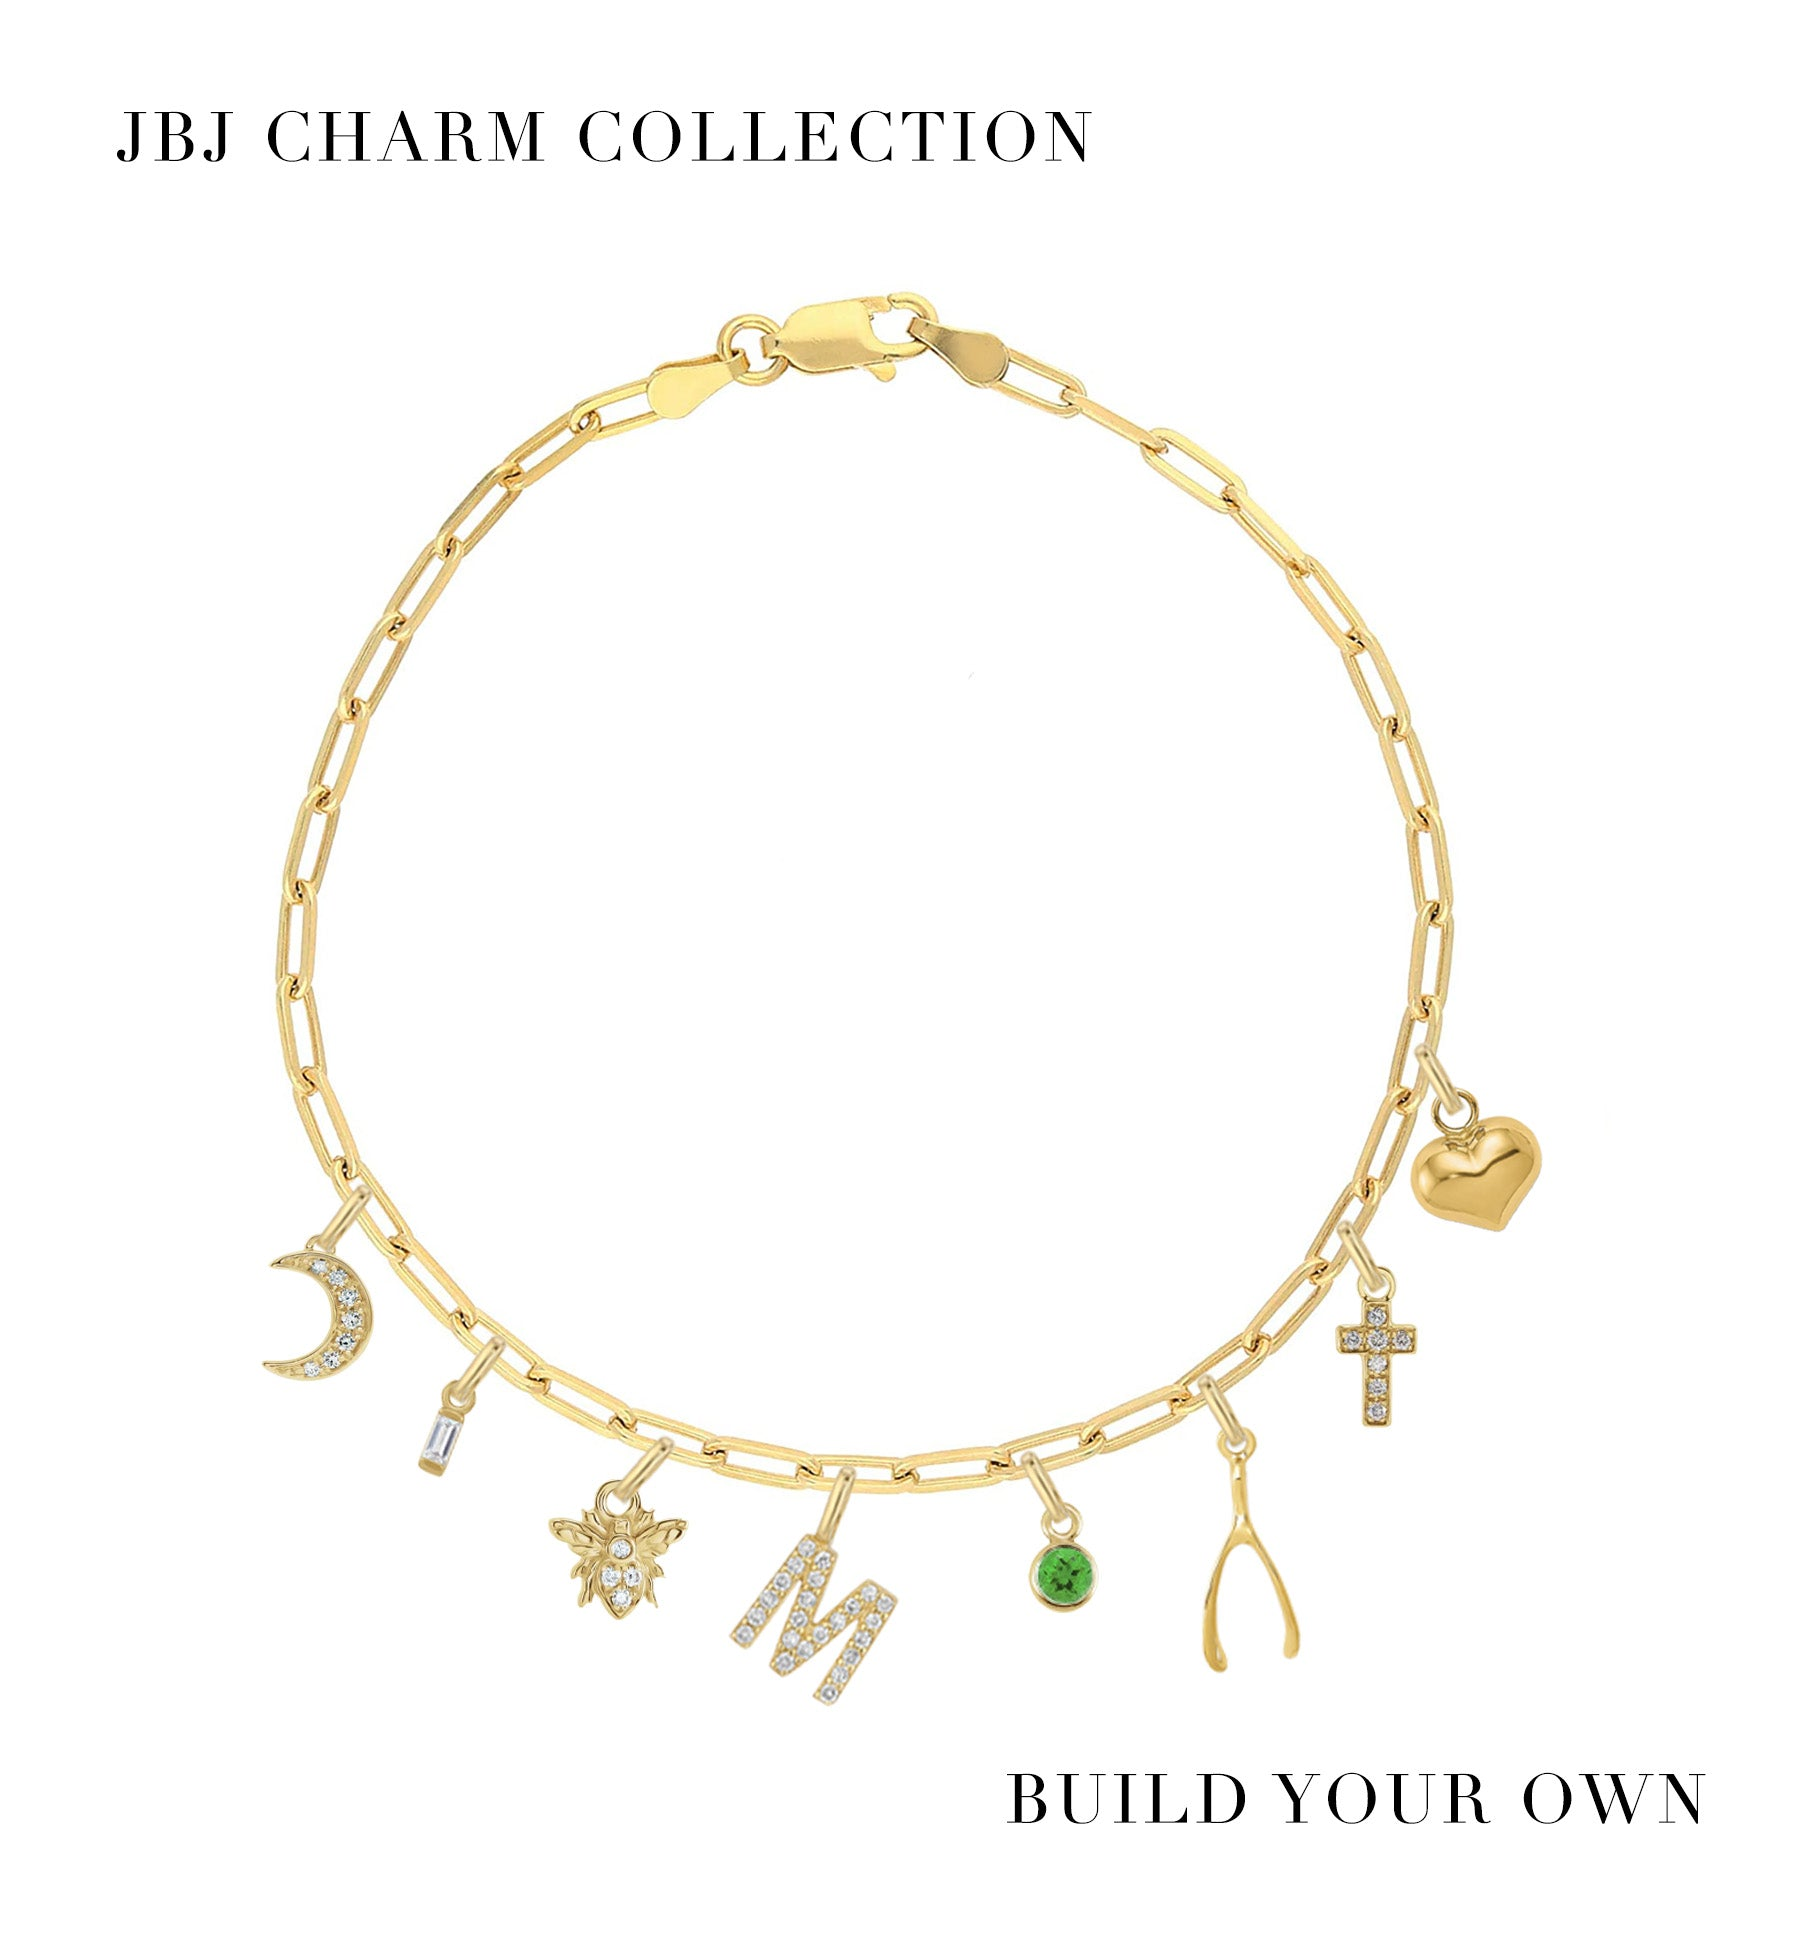 Breast Cancer Charm - JBJ Charm Collection